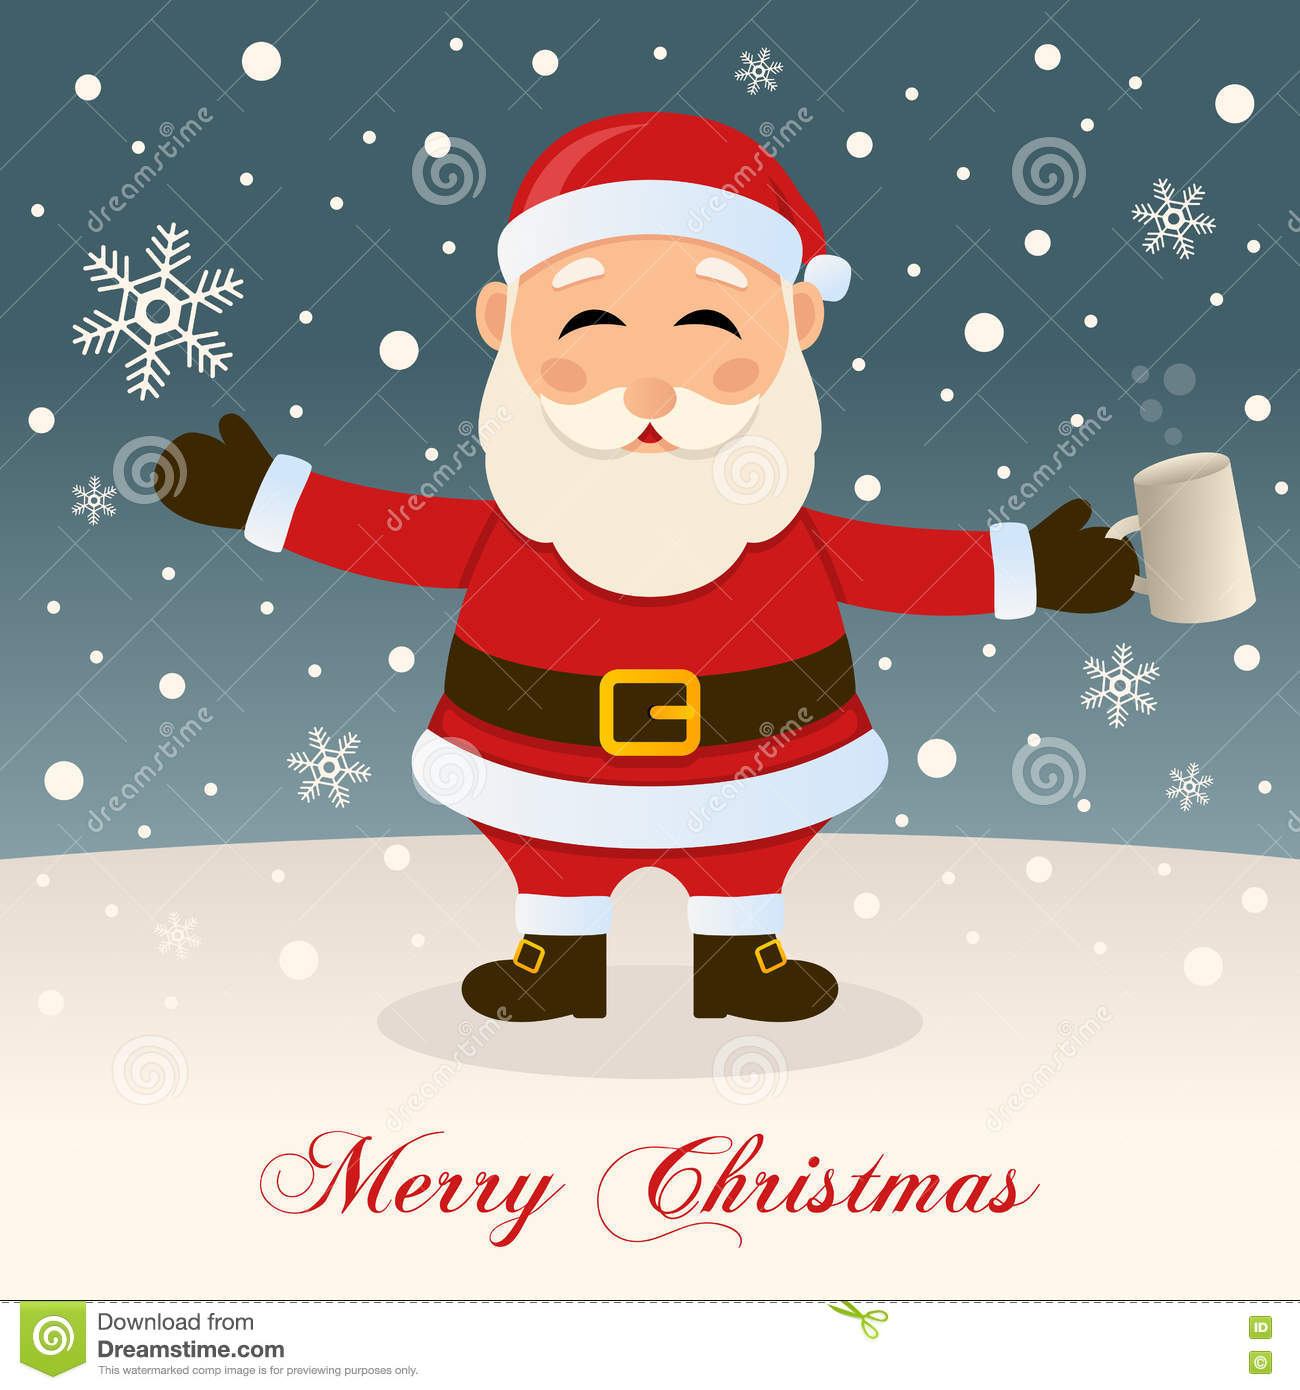 Merry Christmas With Drunk Santa Claus Stock Vector Illustration